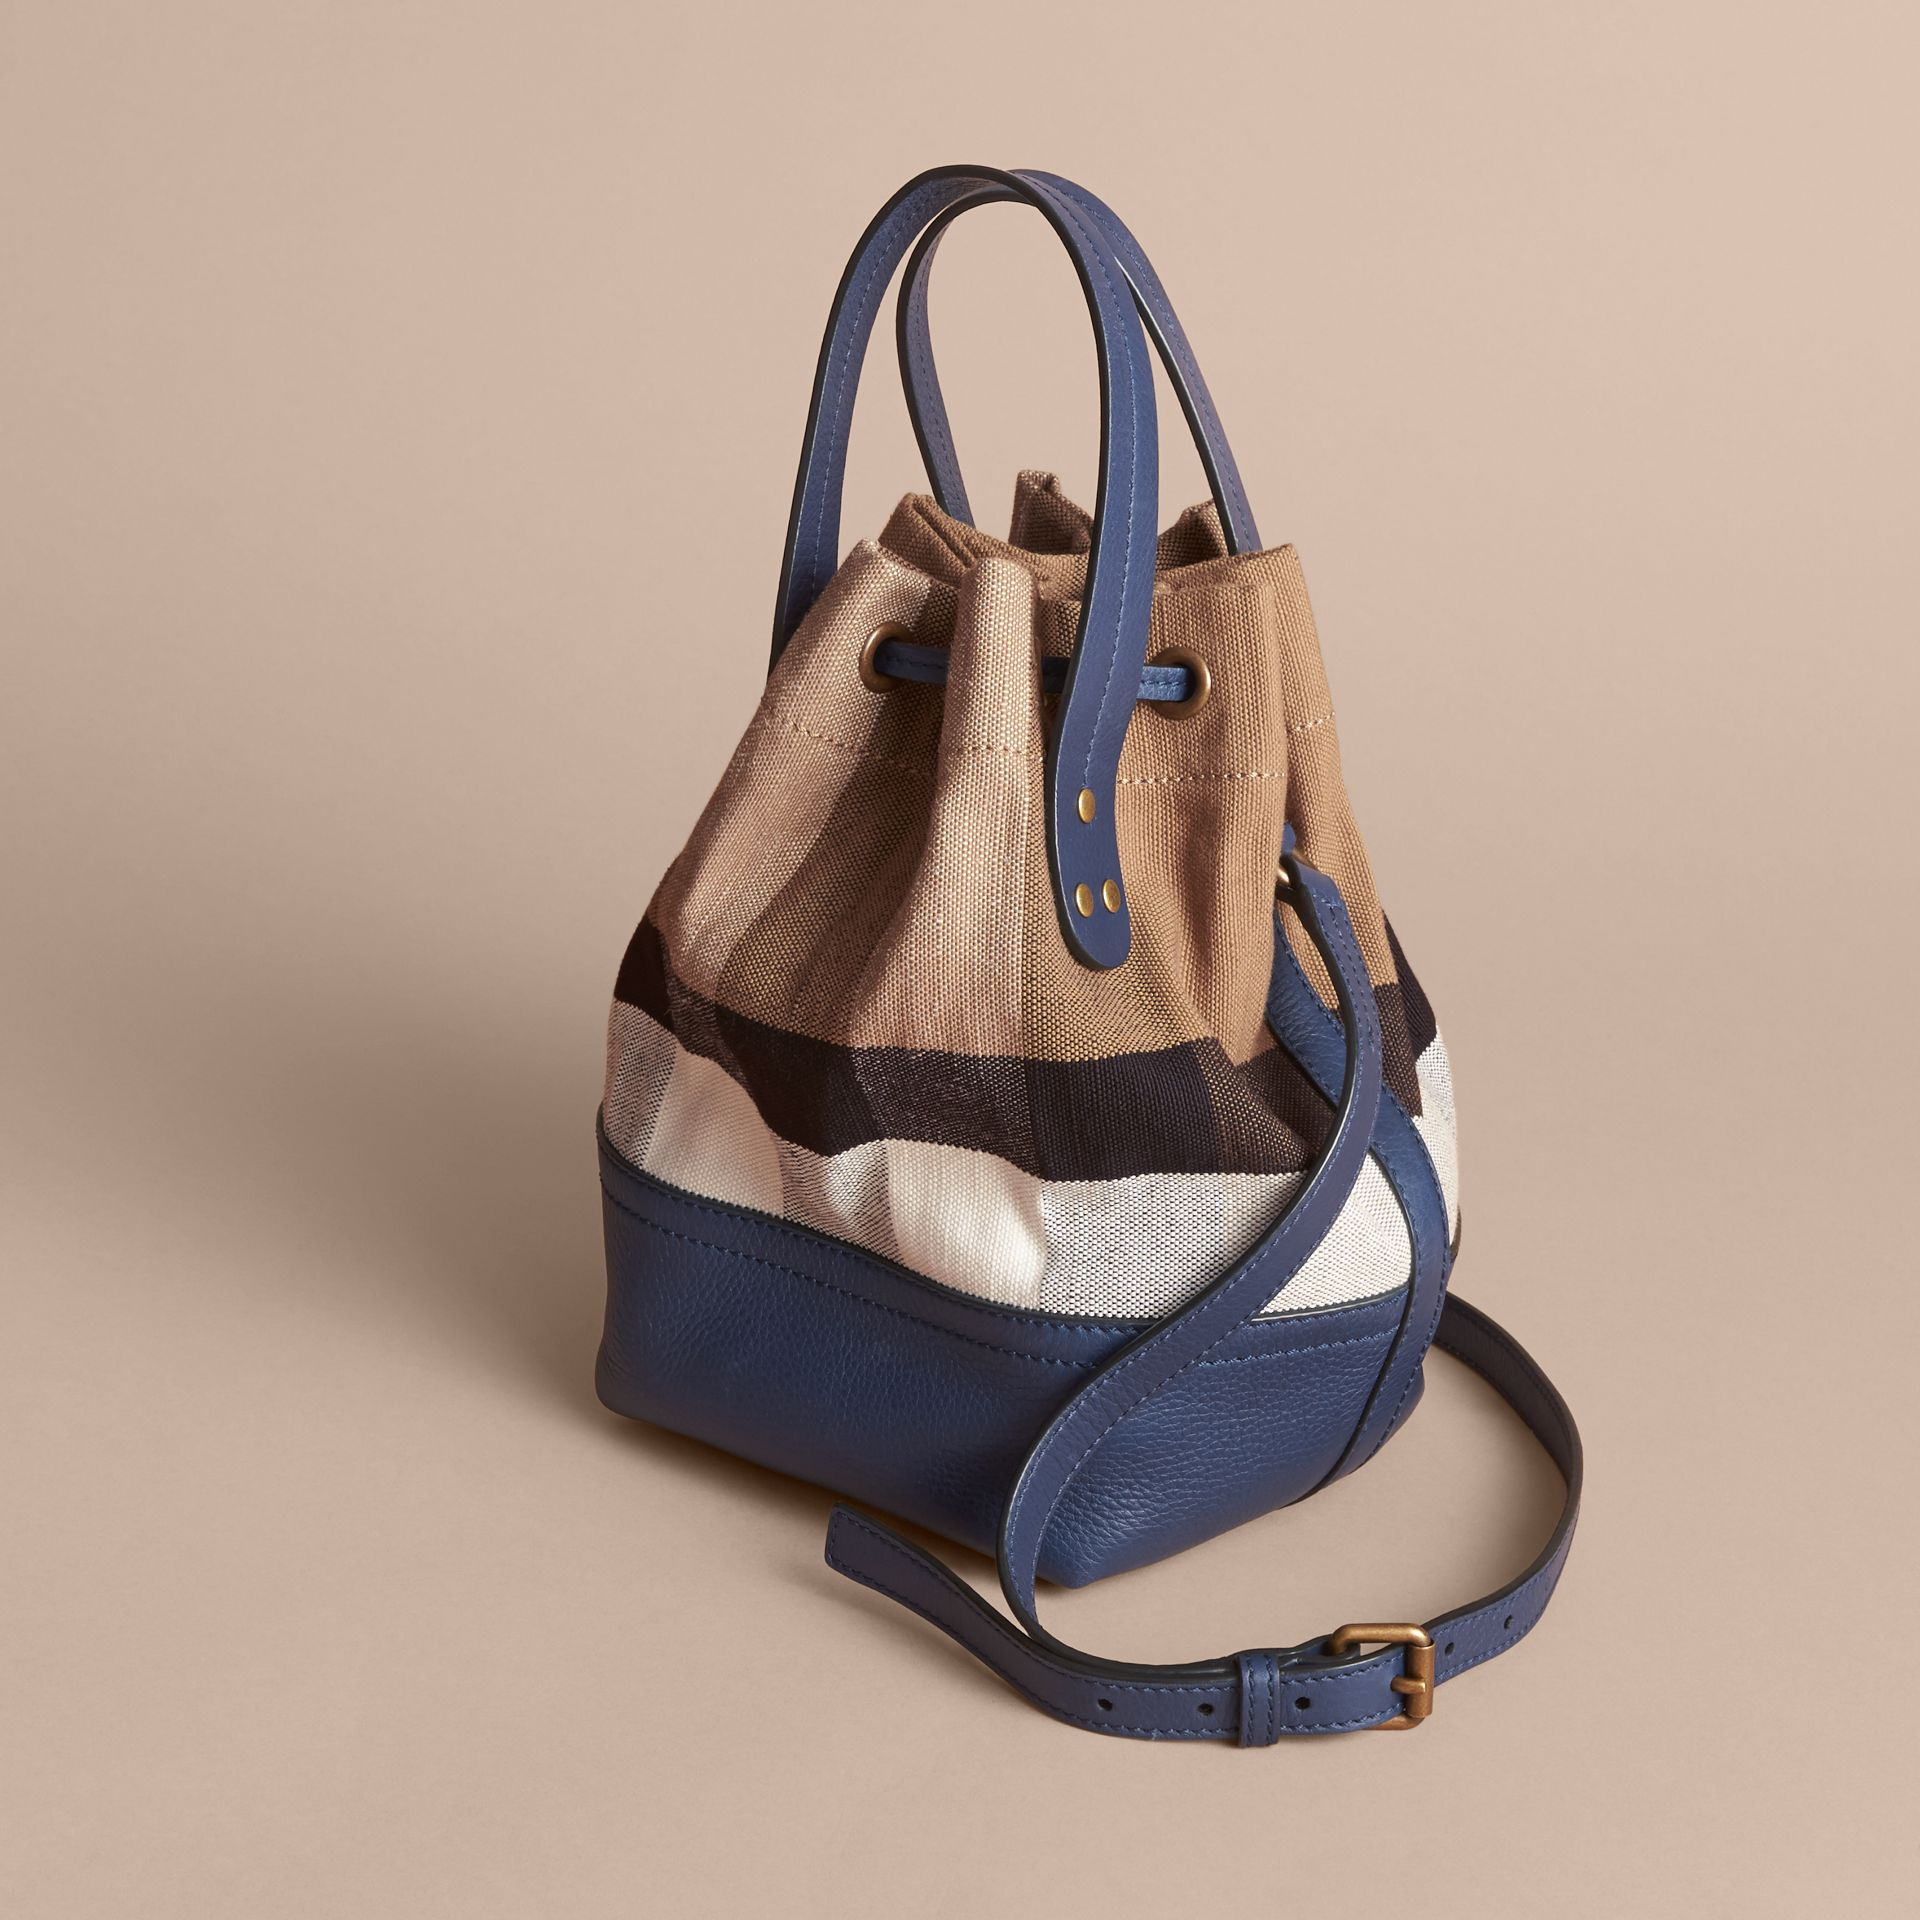 Small Canvas Check and Leather Bucket Bag in Brilliant Navy - Women | Burberry - gallery image 5